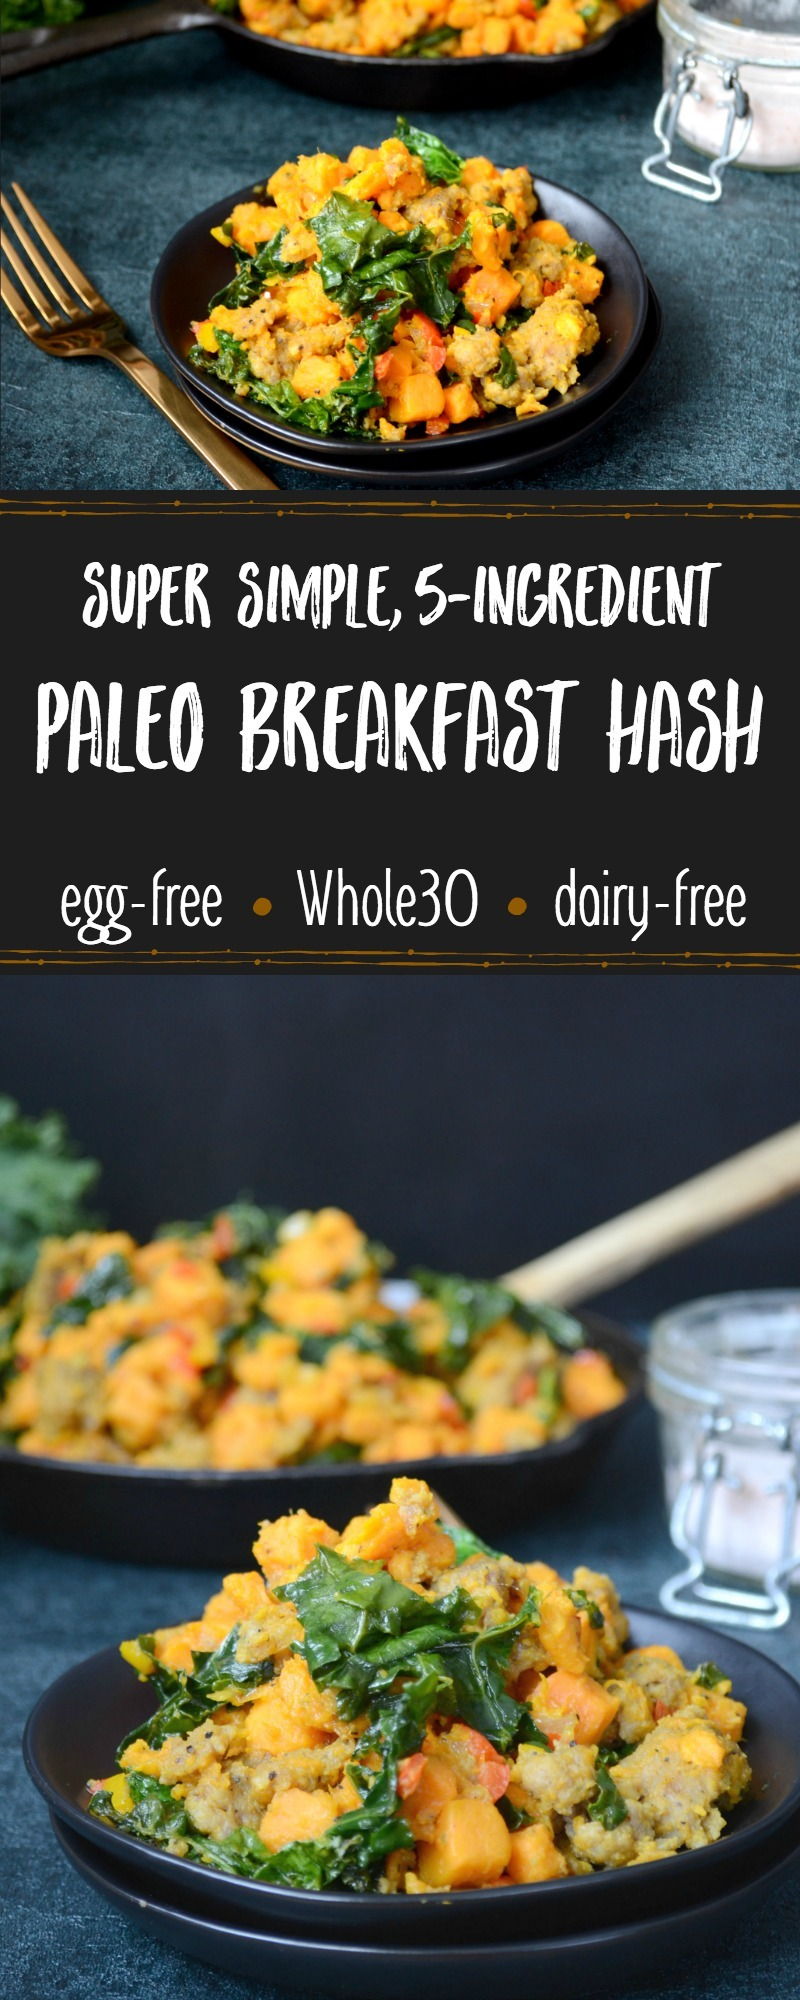 colorful breakfast hash with greens on a dark background and text